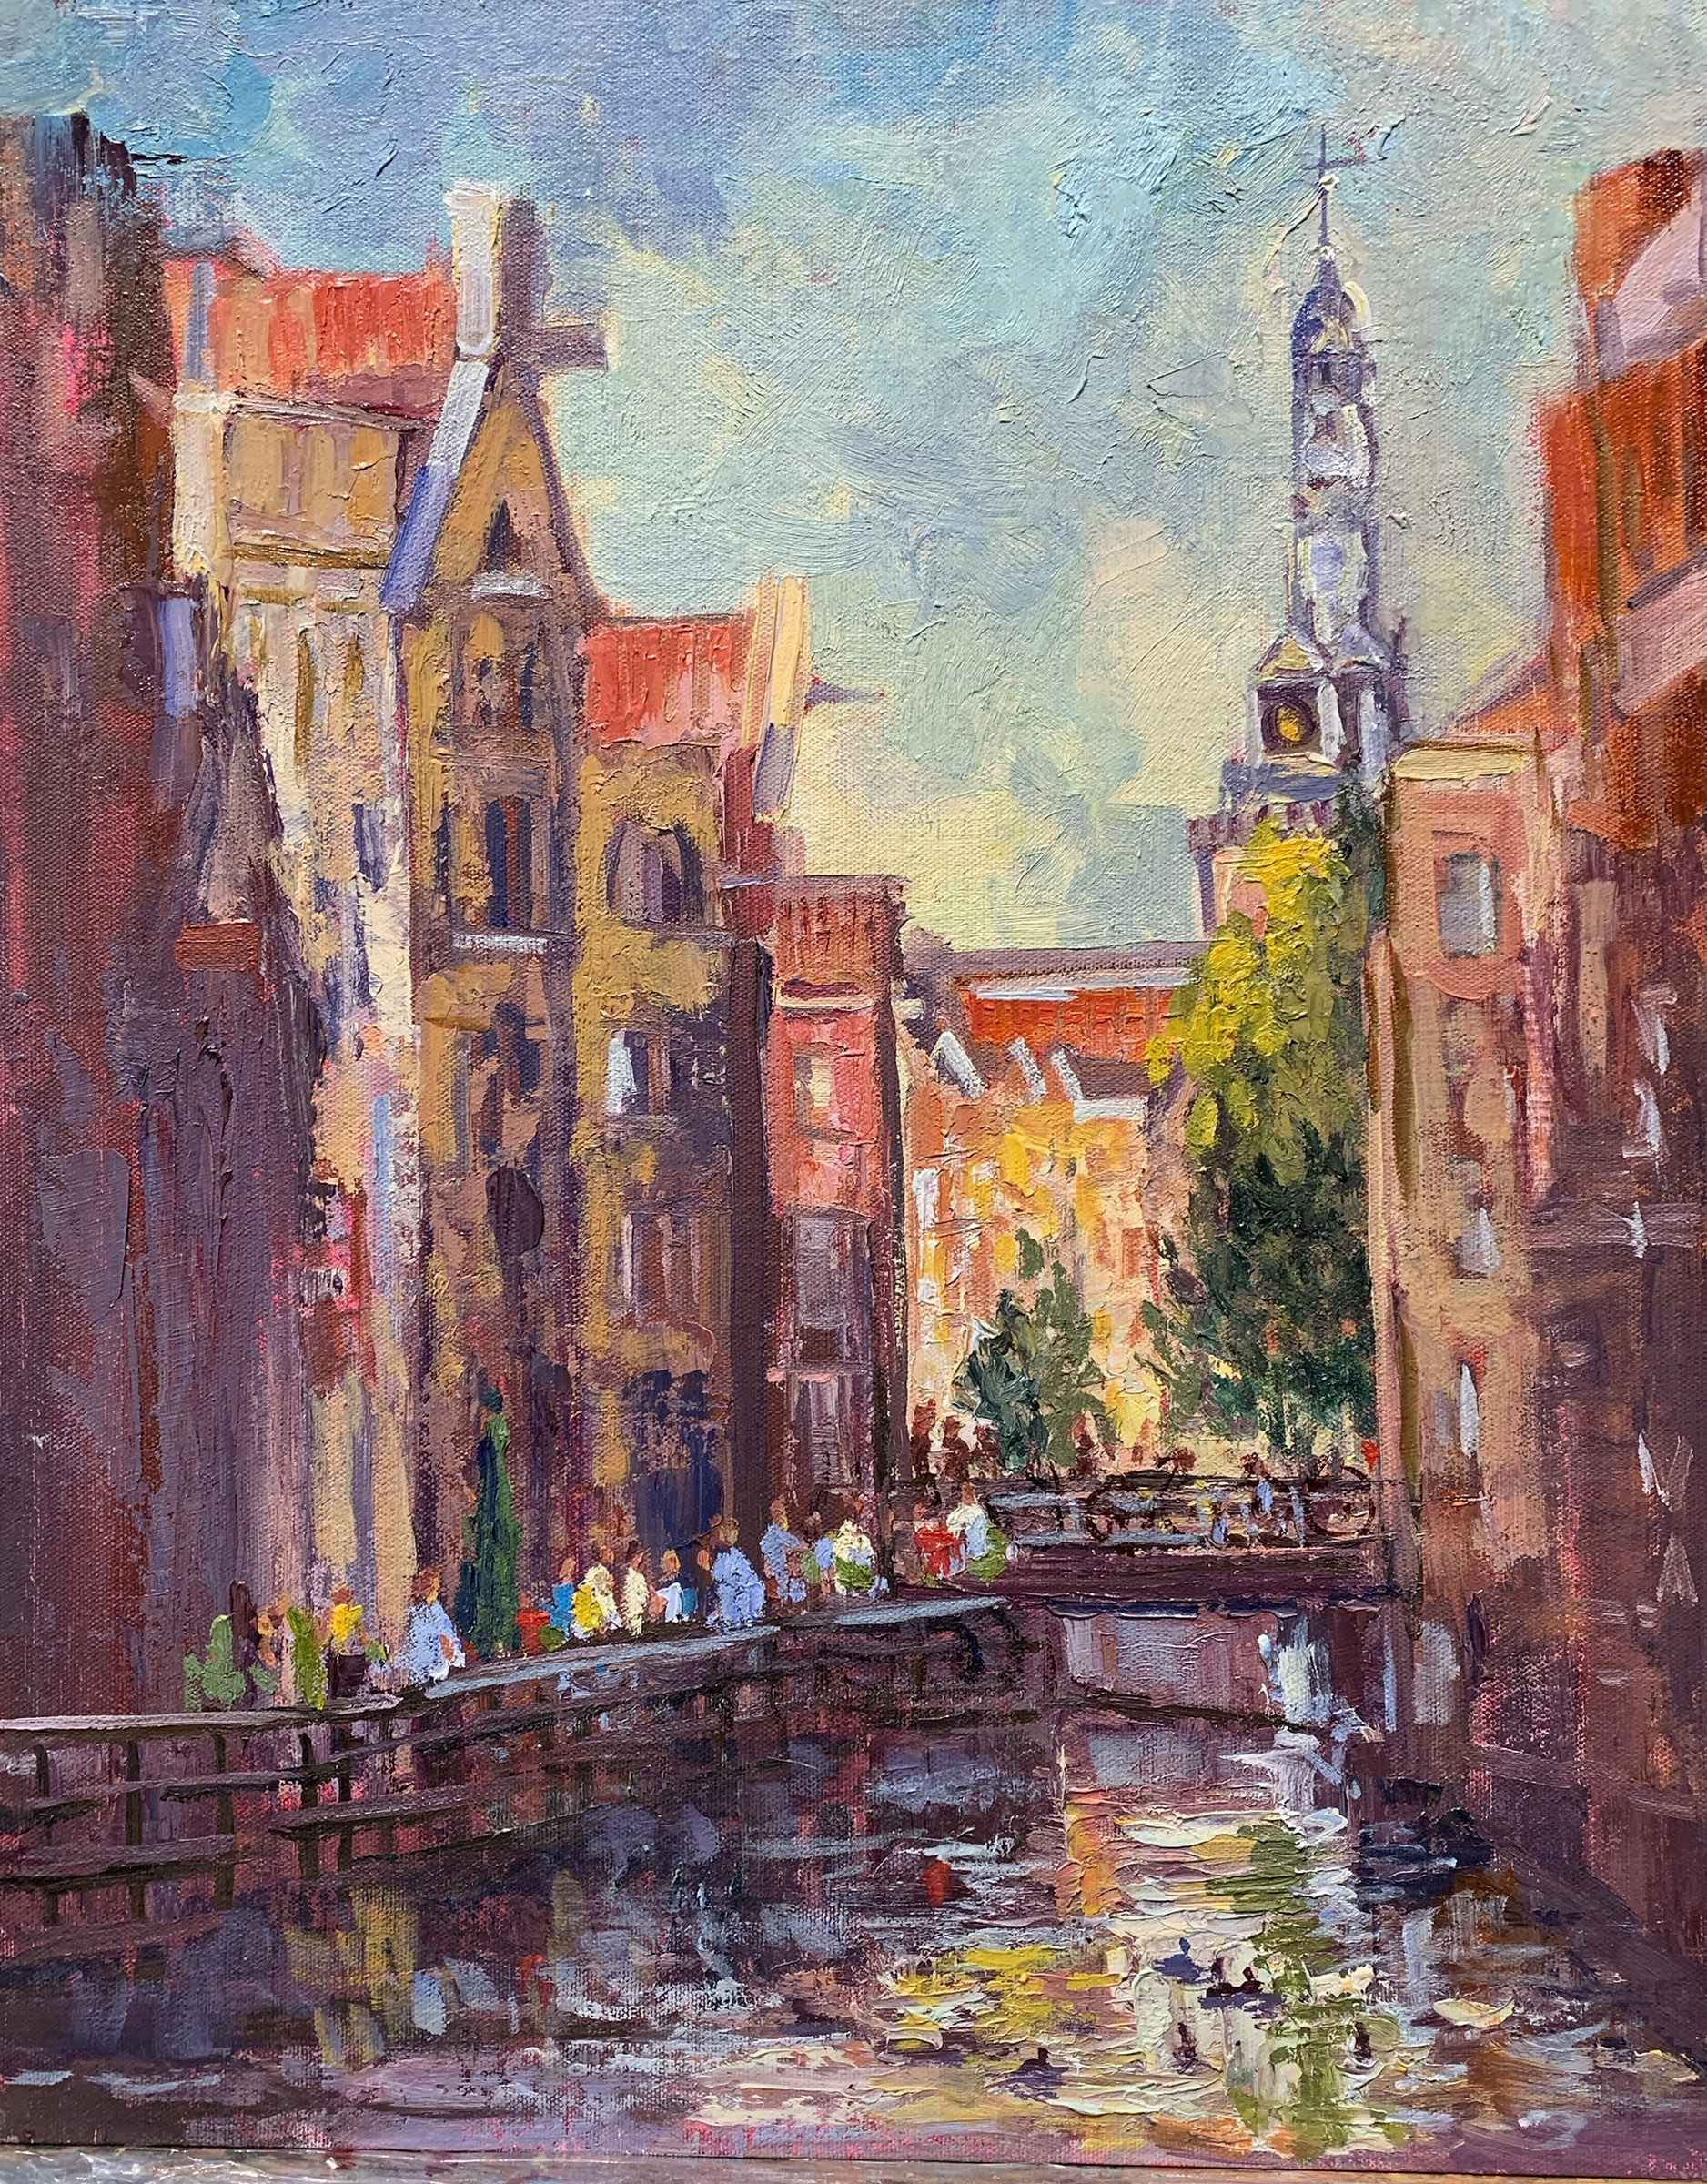 Evening on the Canal,... by  Doloris Pederson - Masterpiece Online